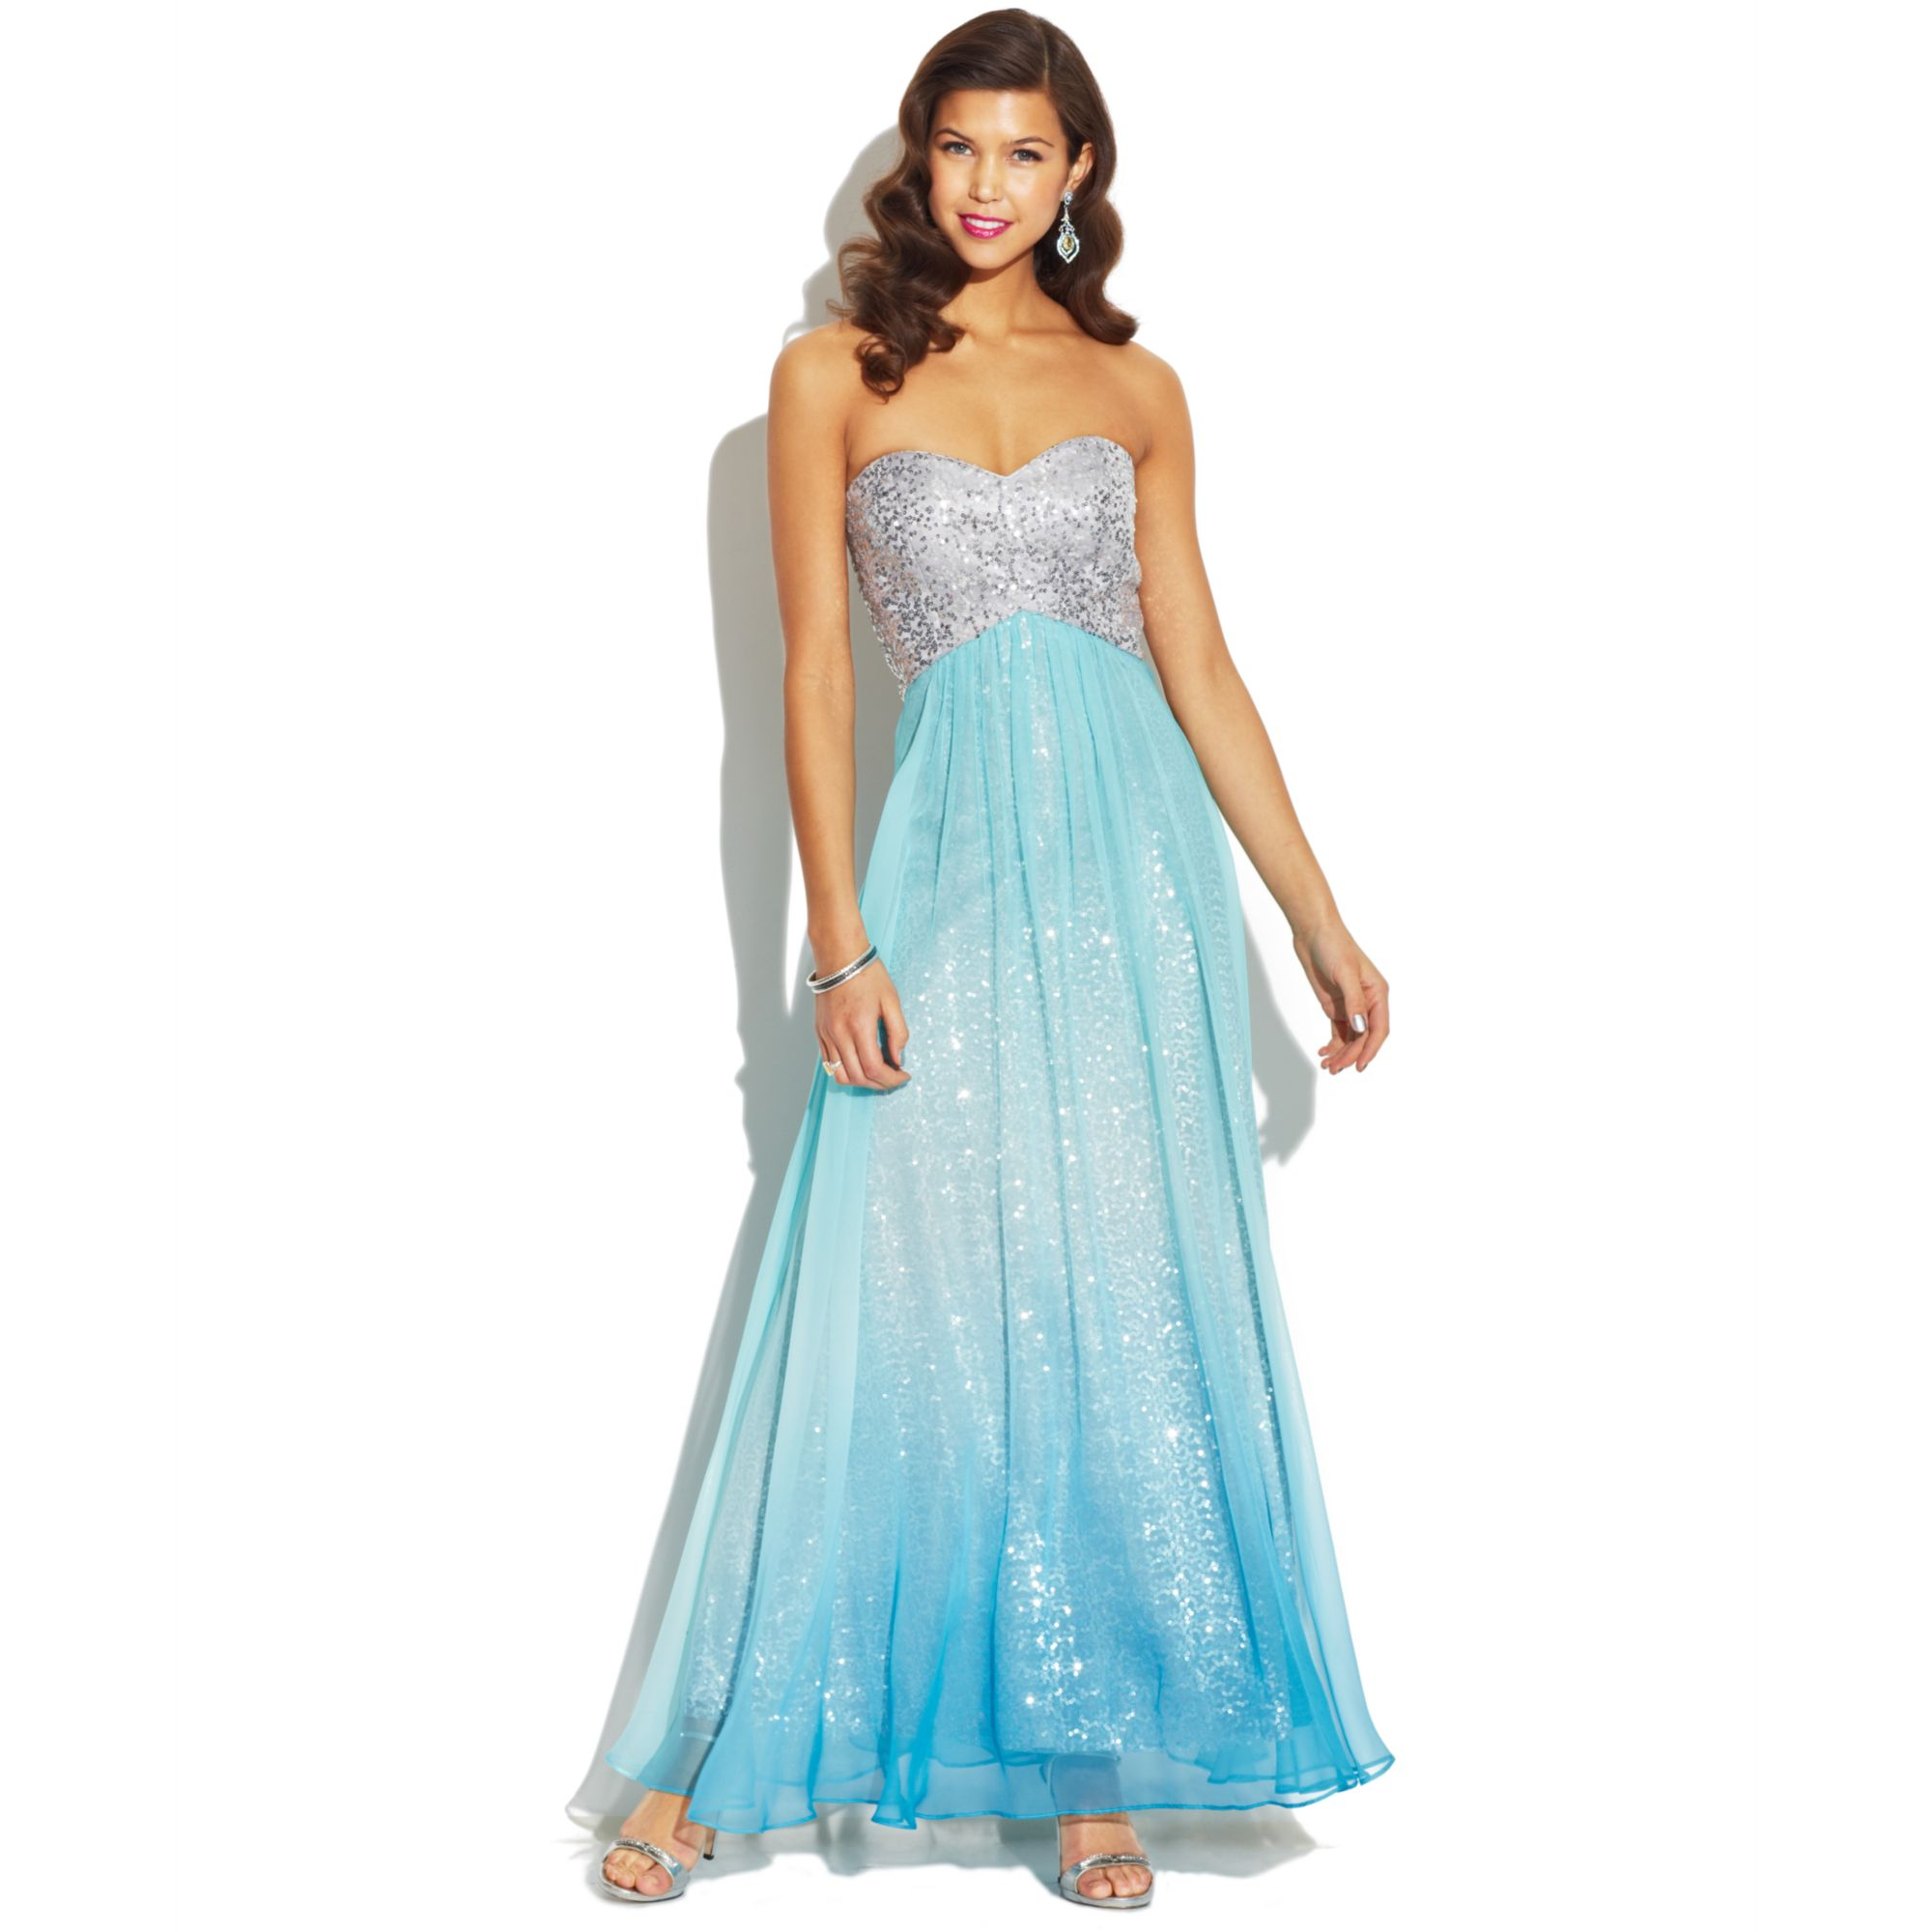 65f7c984823 Jump Juniors Strapless Sequin Ombre Dress in Blue - Lyst